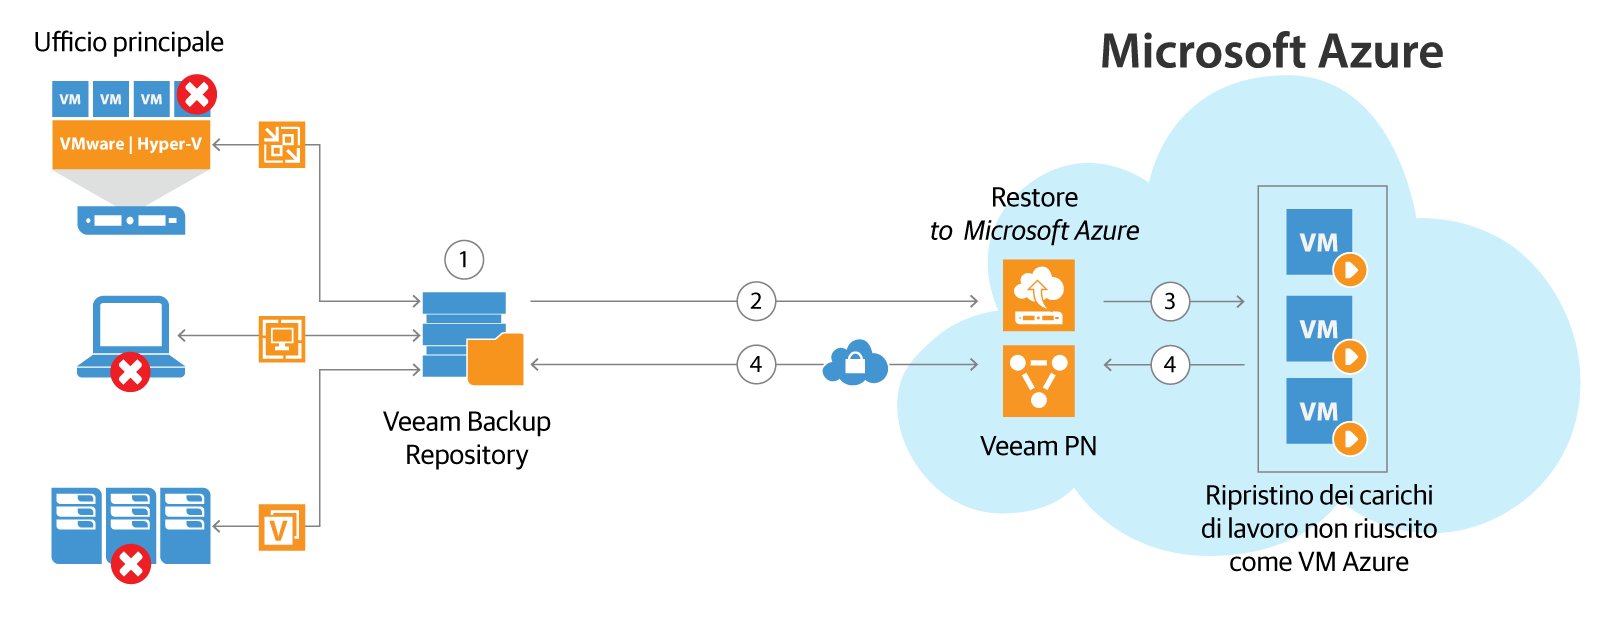 Veeam Disaster Recovery in Microsoft Azure abbina la funzionalità di Veeam PN for Microsoft Azure (Veeam Powered Network) e di Direct Restore to Microsoft Azure per fornire un DR on-demand completo nel cloud. (Veeam PN = Veeam Powered Network; VPN = Virtual Private Network).